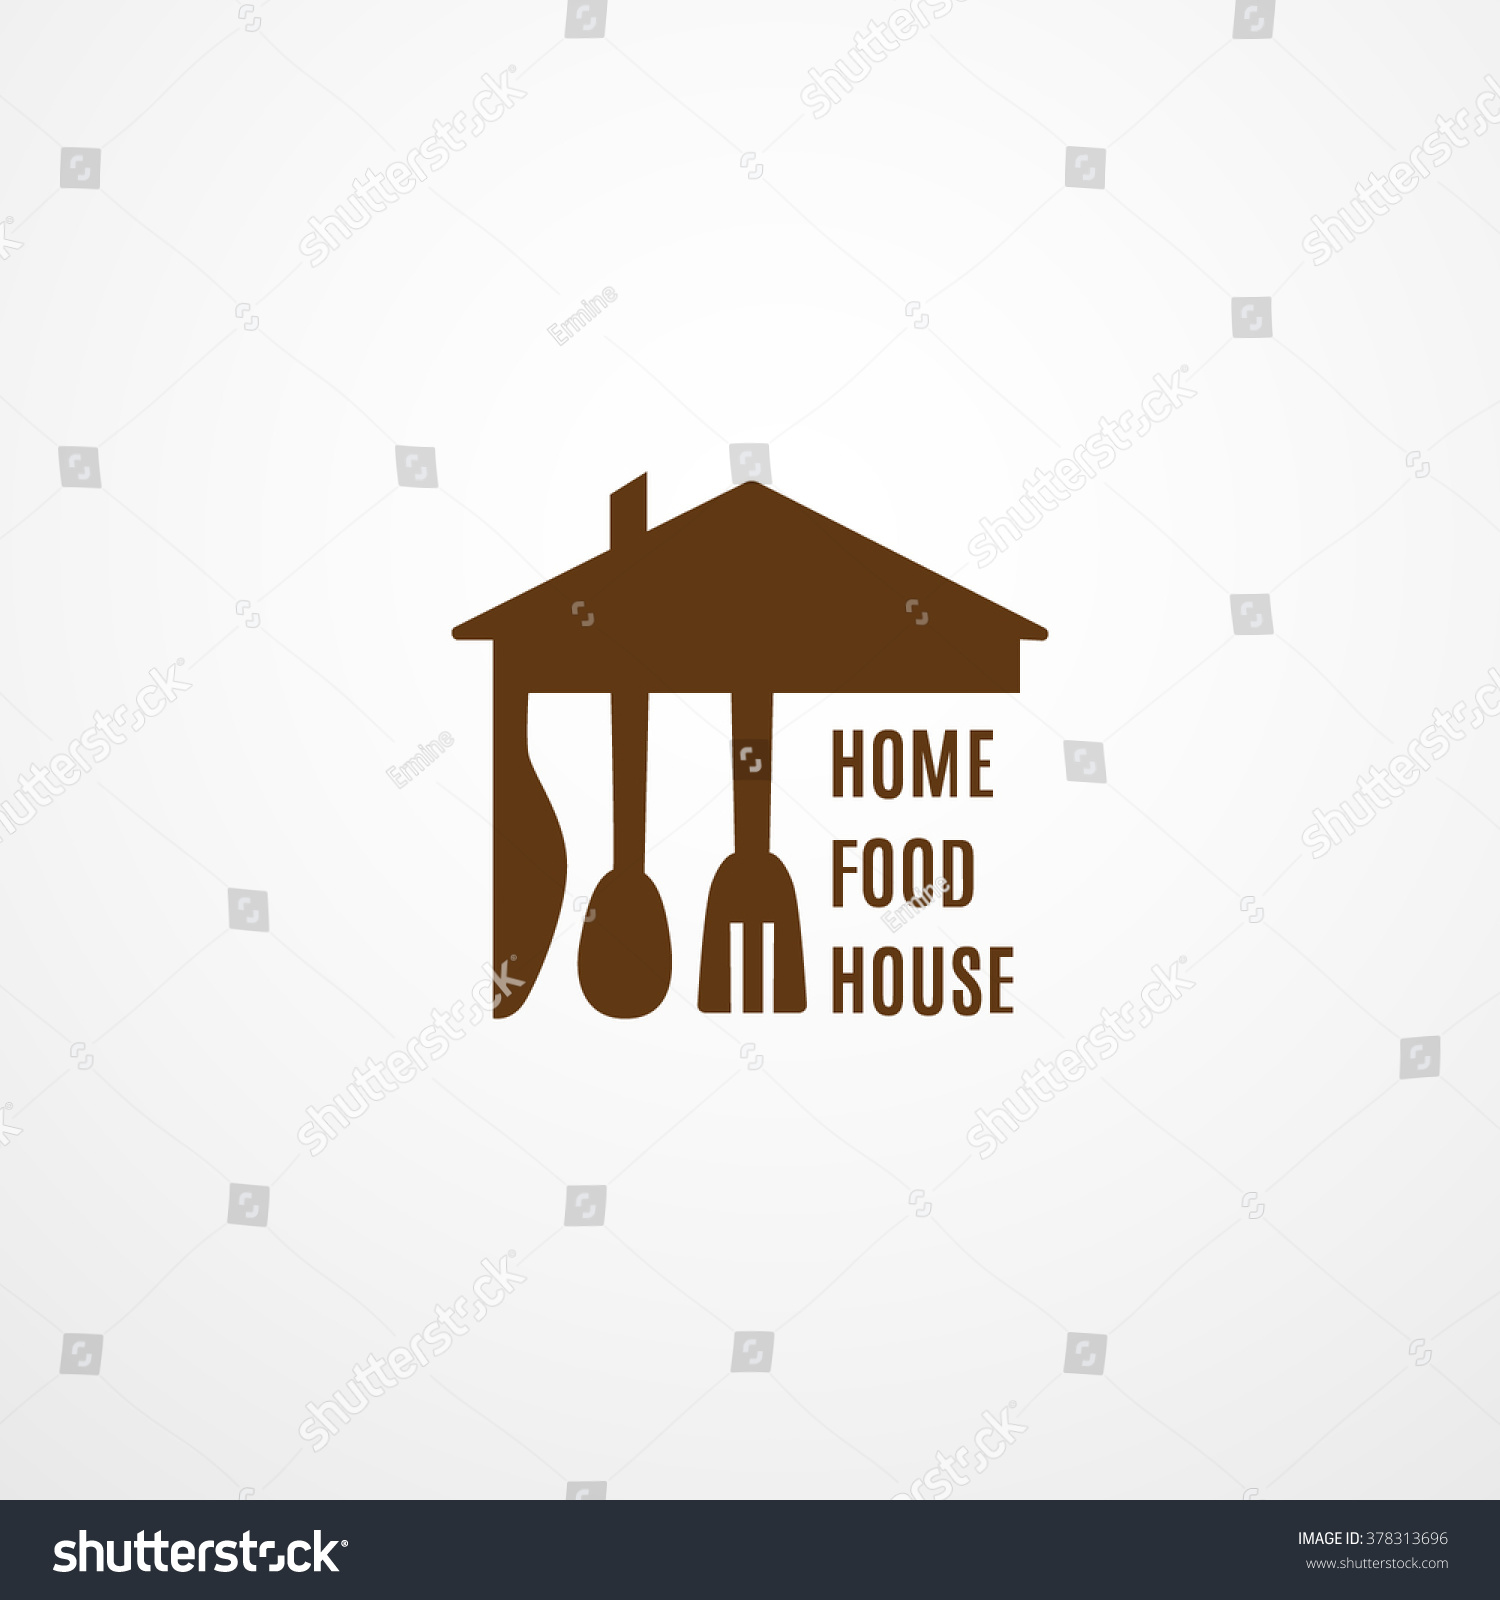 Food Logo Template Home Food House Stock Vector 378313696 ...